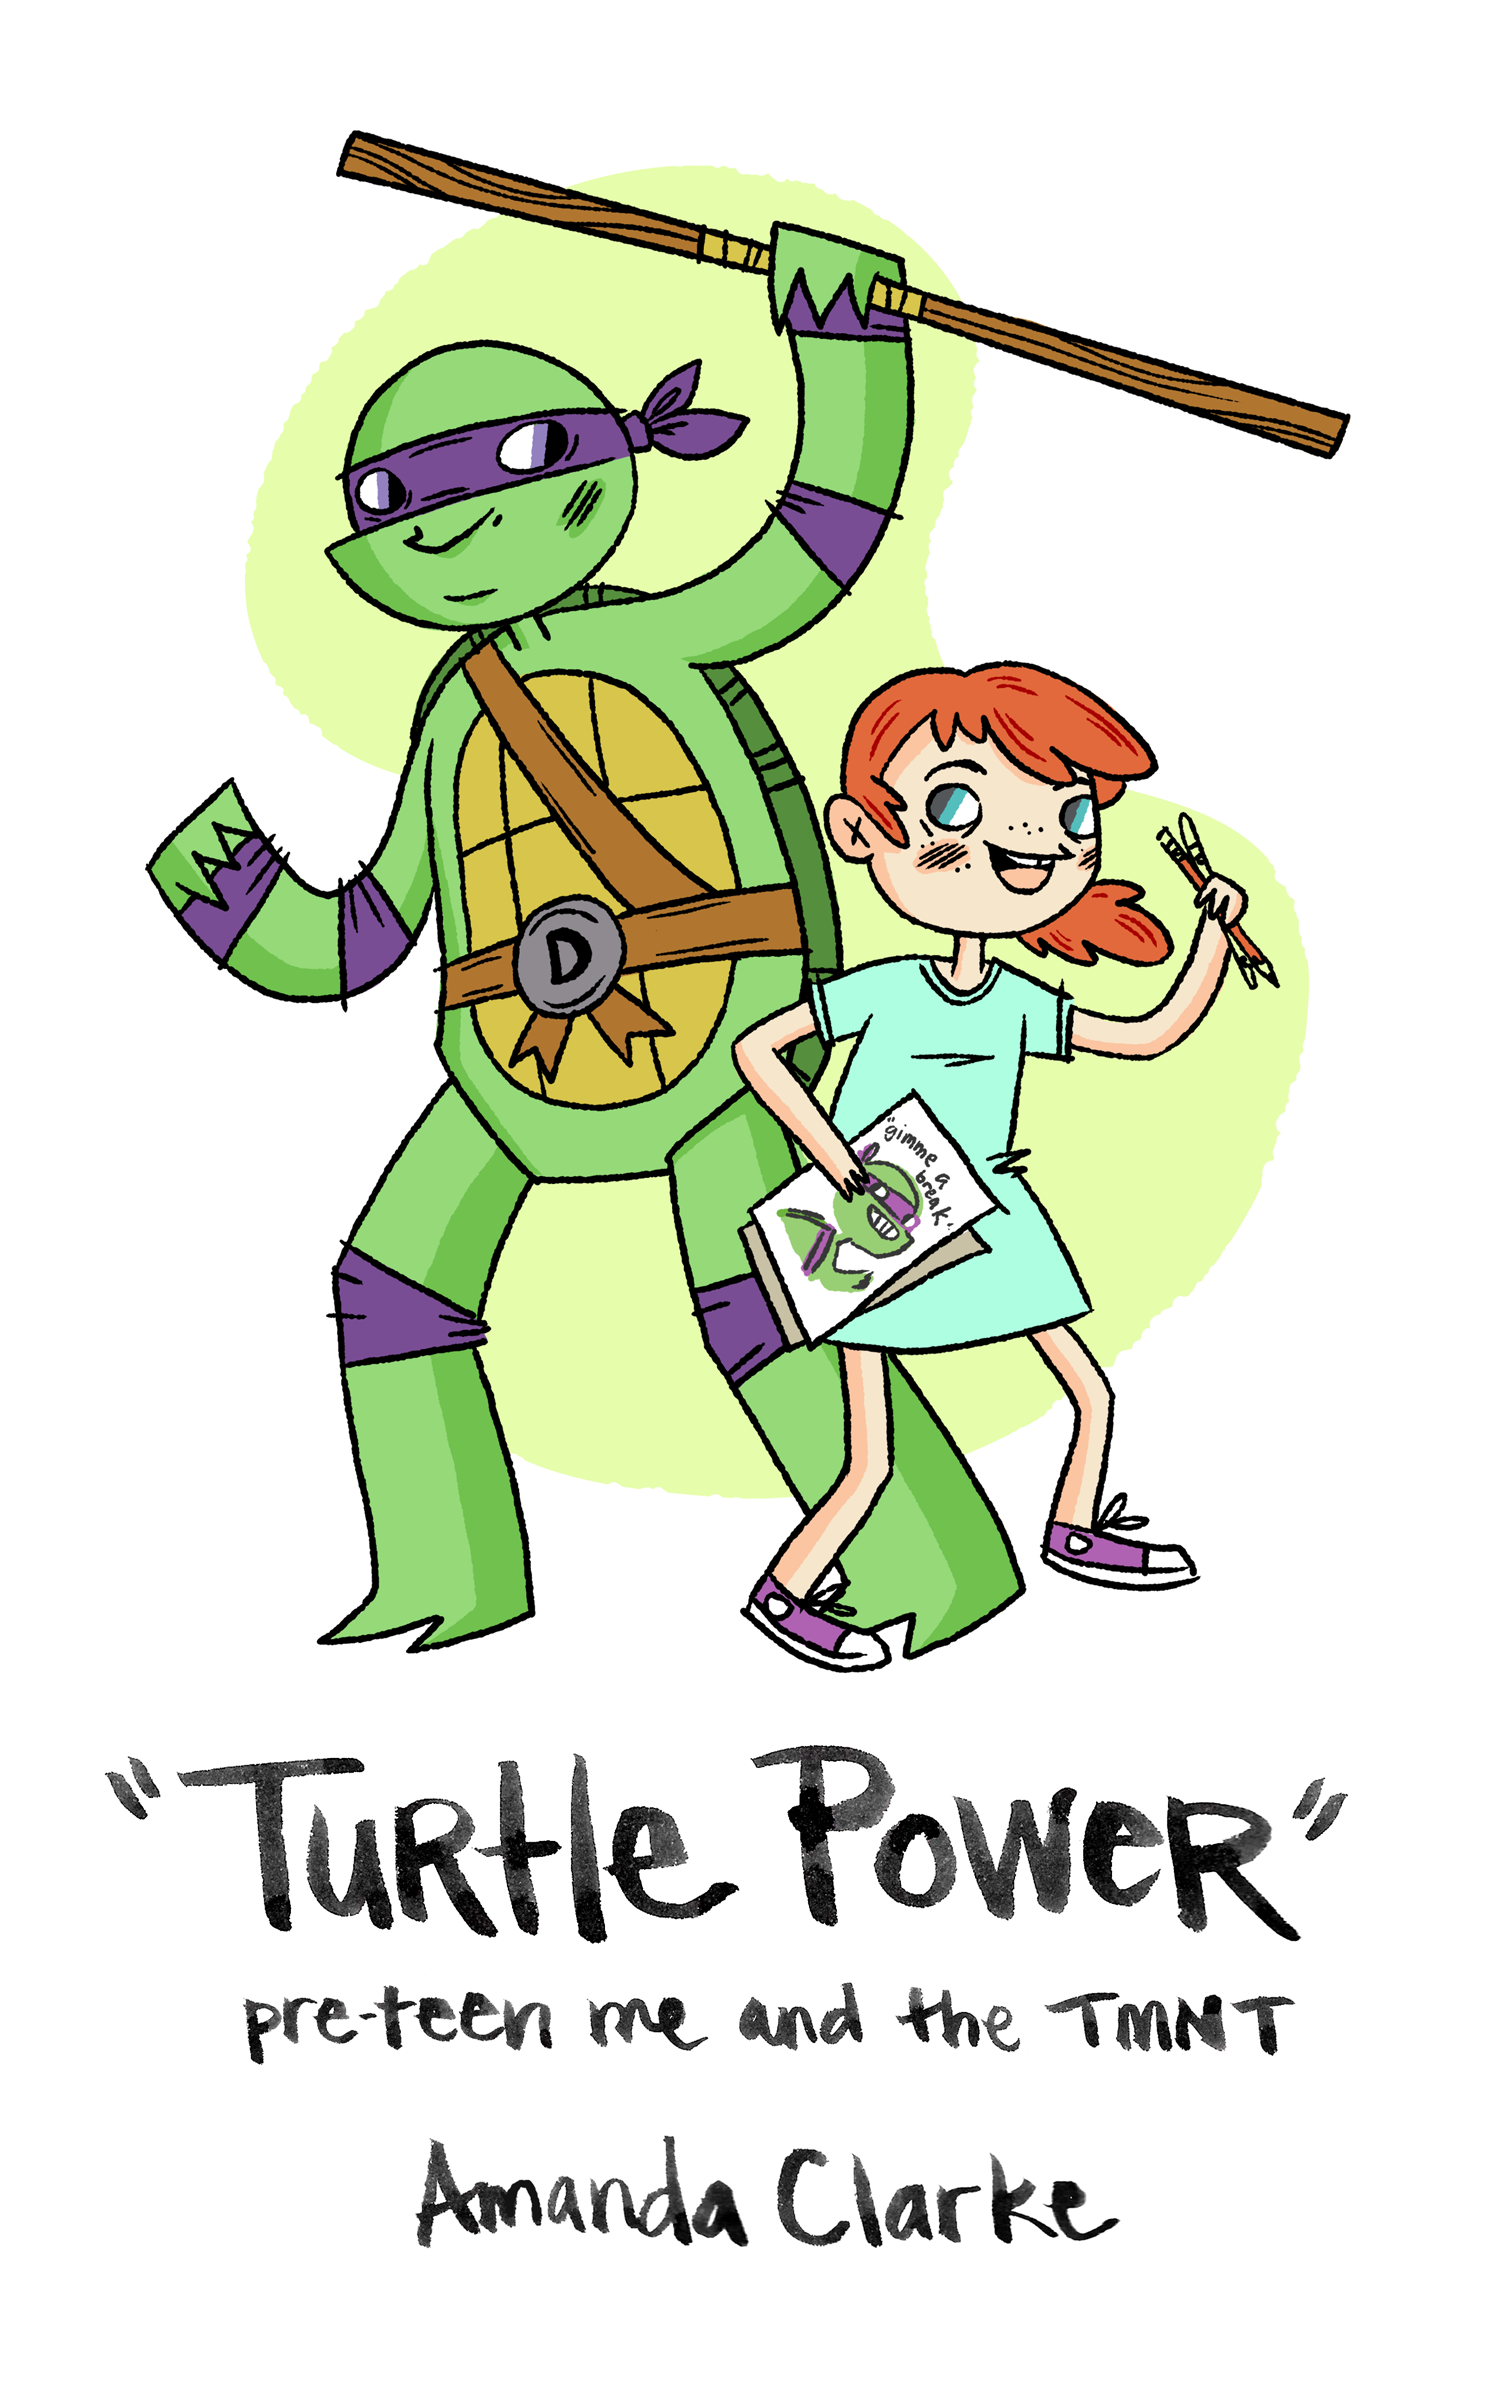 A mini comic about my childhood obsession with the Teenage Mutant Ninja Turtles.